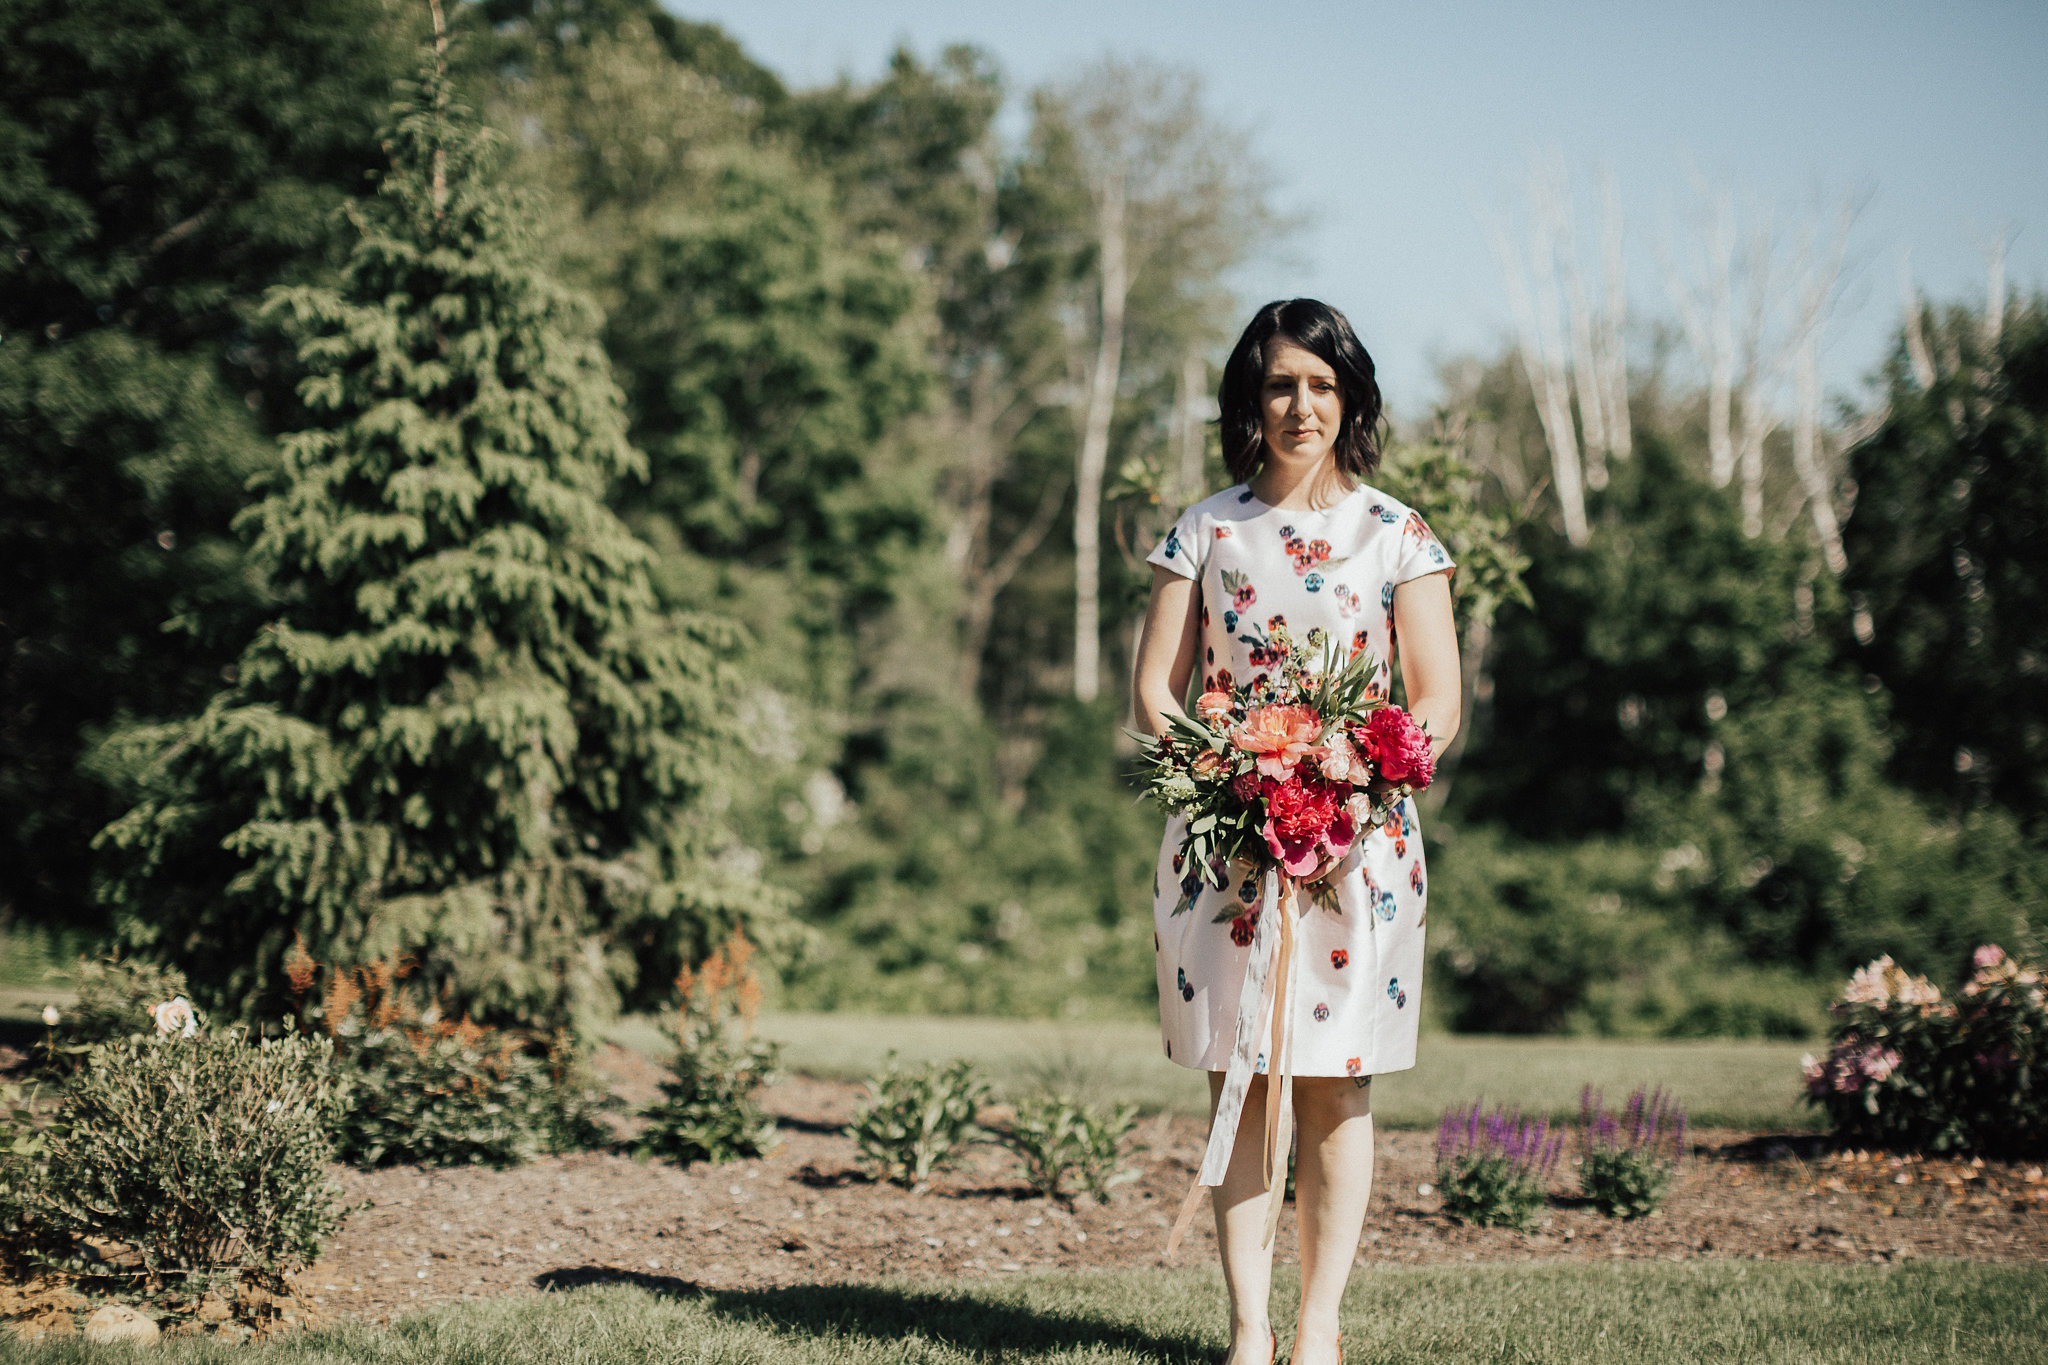 Watershed-Floral-Live-Well-Farm-June-Wedding-Maine-Coast-375.jpg